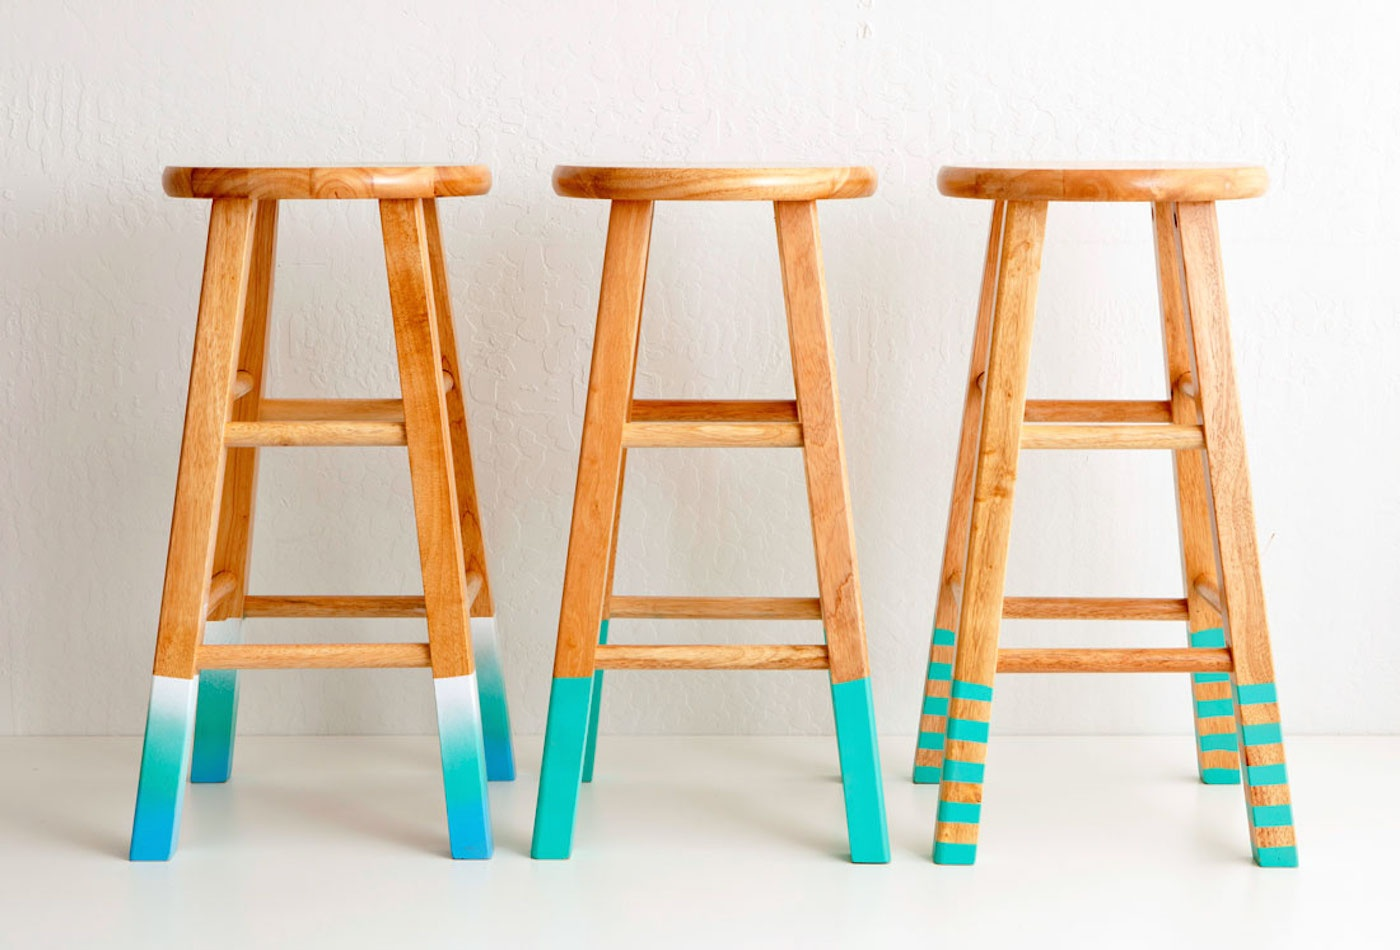 stools_brit_and_co.